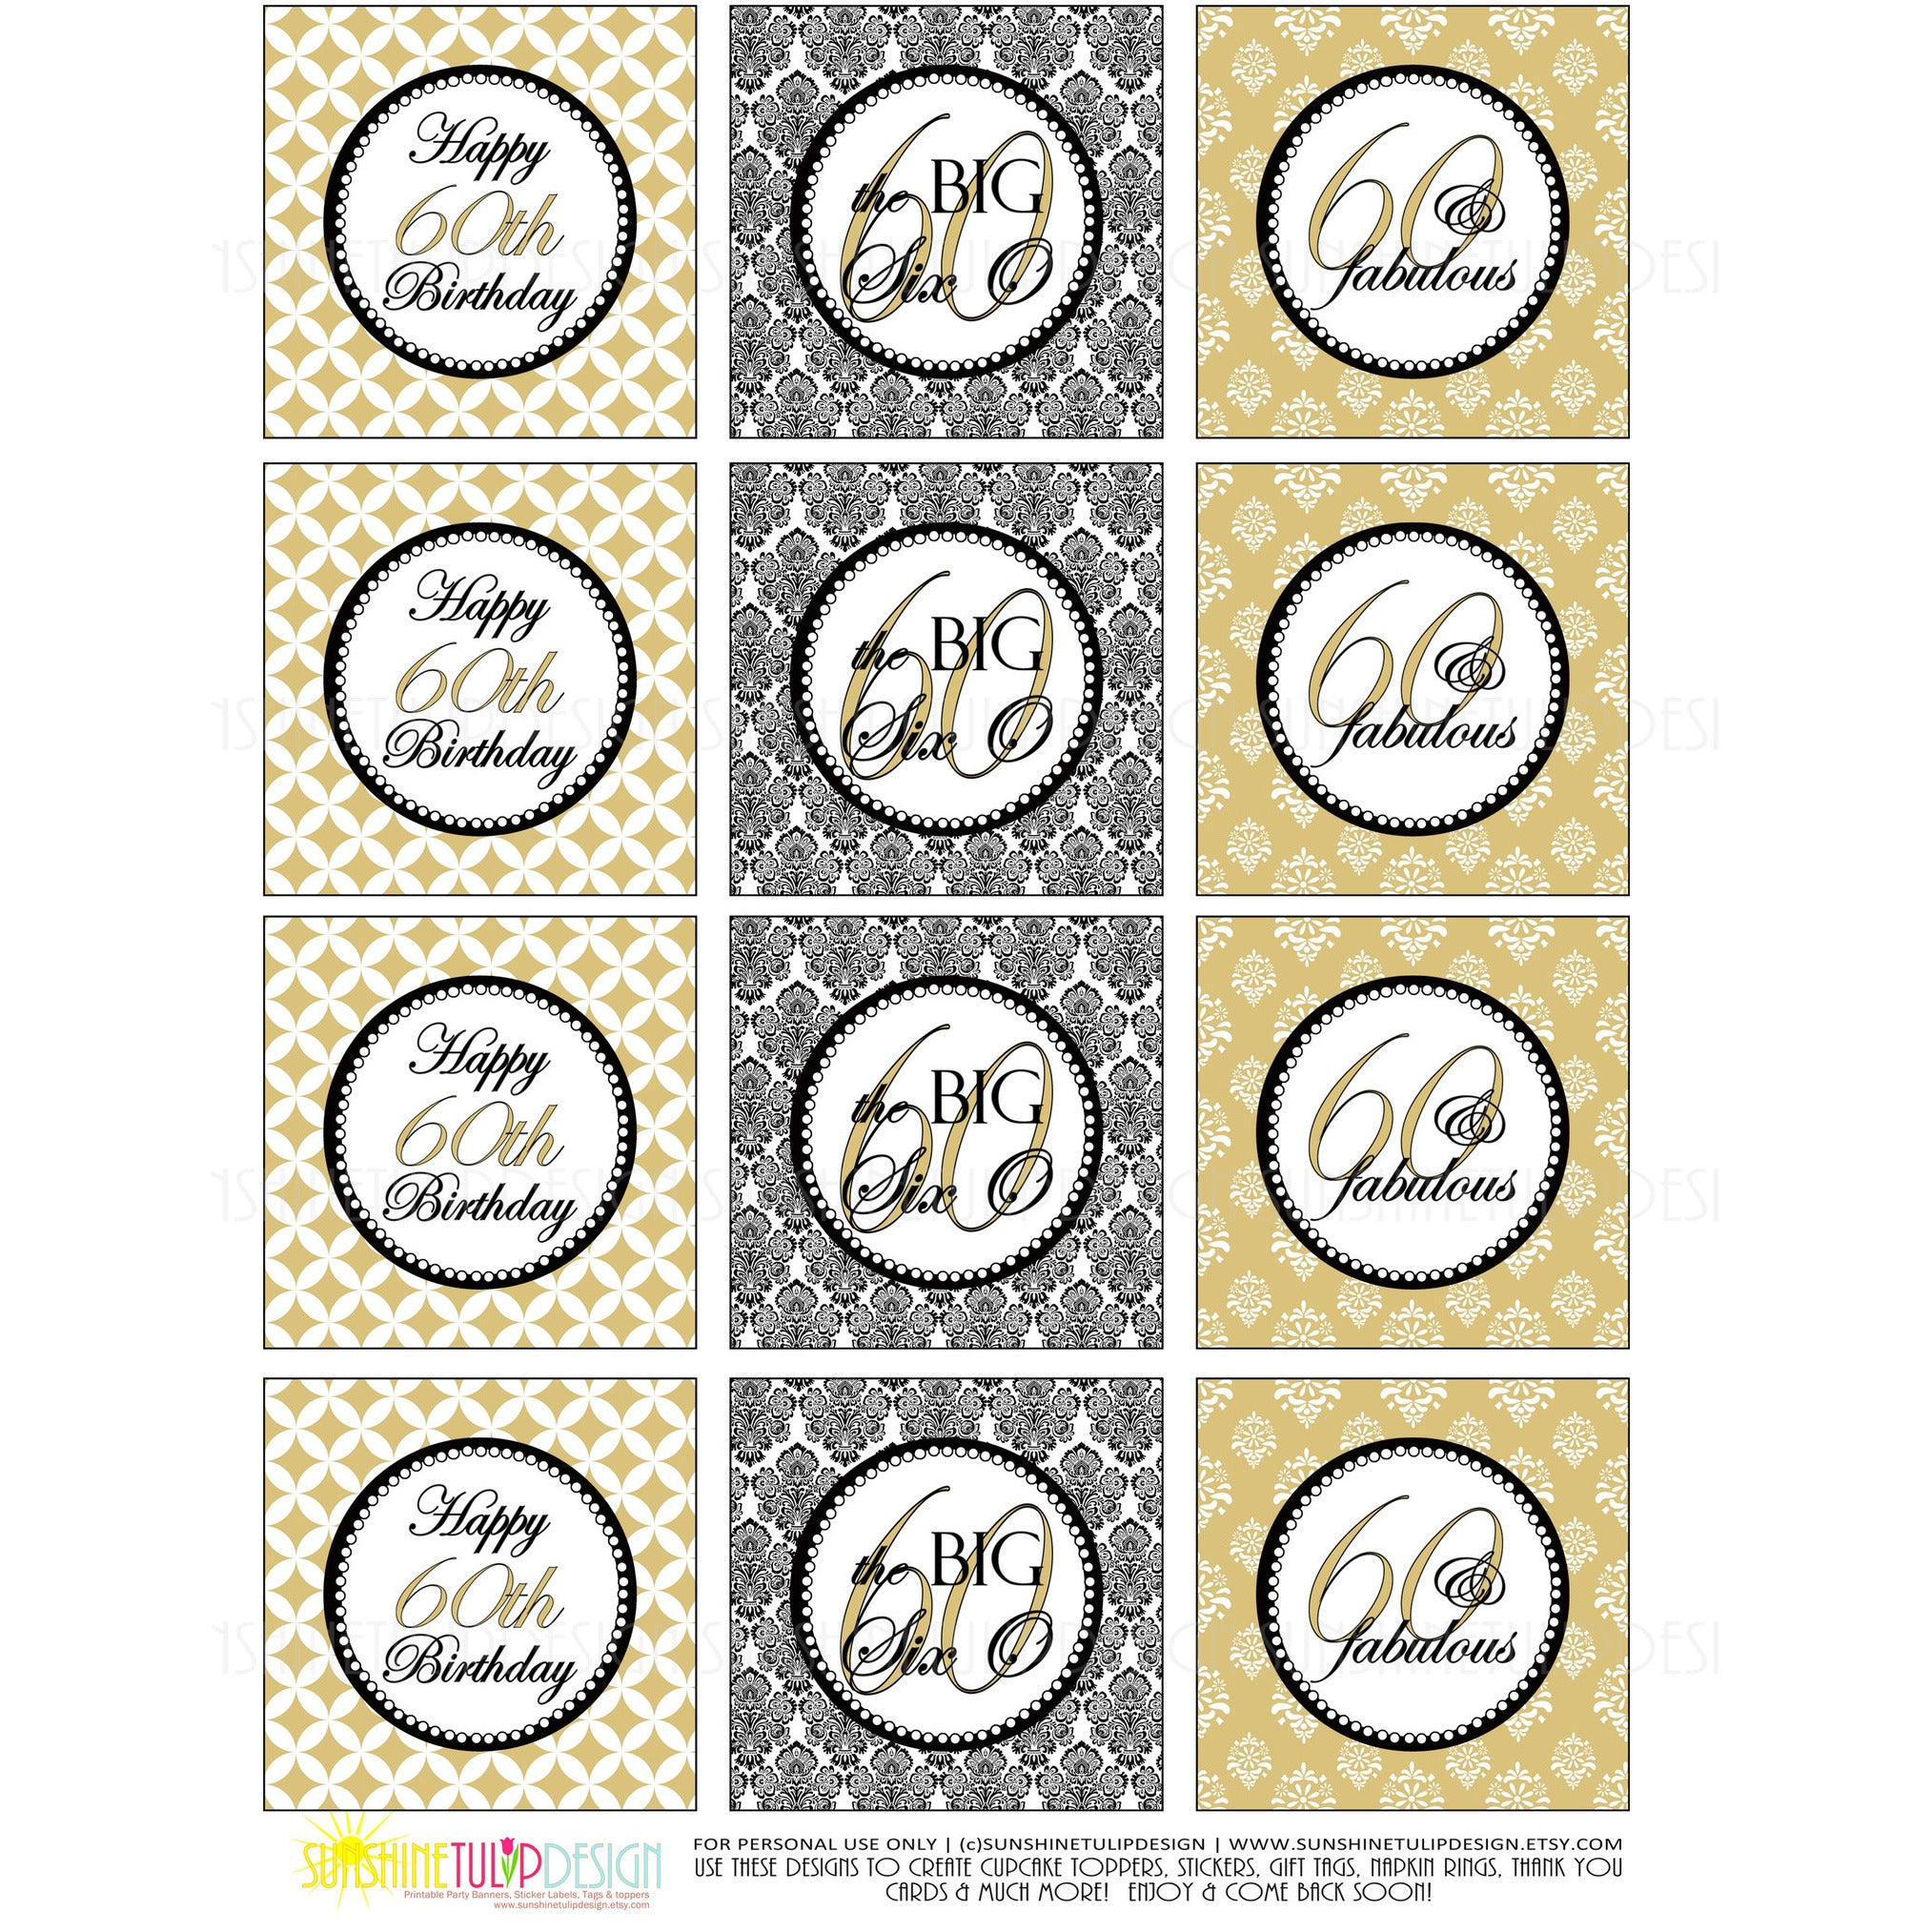 photograph about Printable Sticker Labels named Printable 60th Birthday Gold Cupcake Toppers, Sticker Labels Bash Choose Tags by means of Sunshinetulipdesign